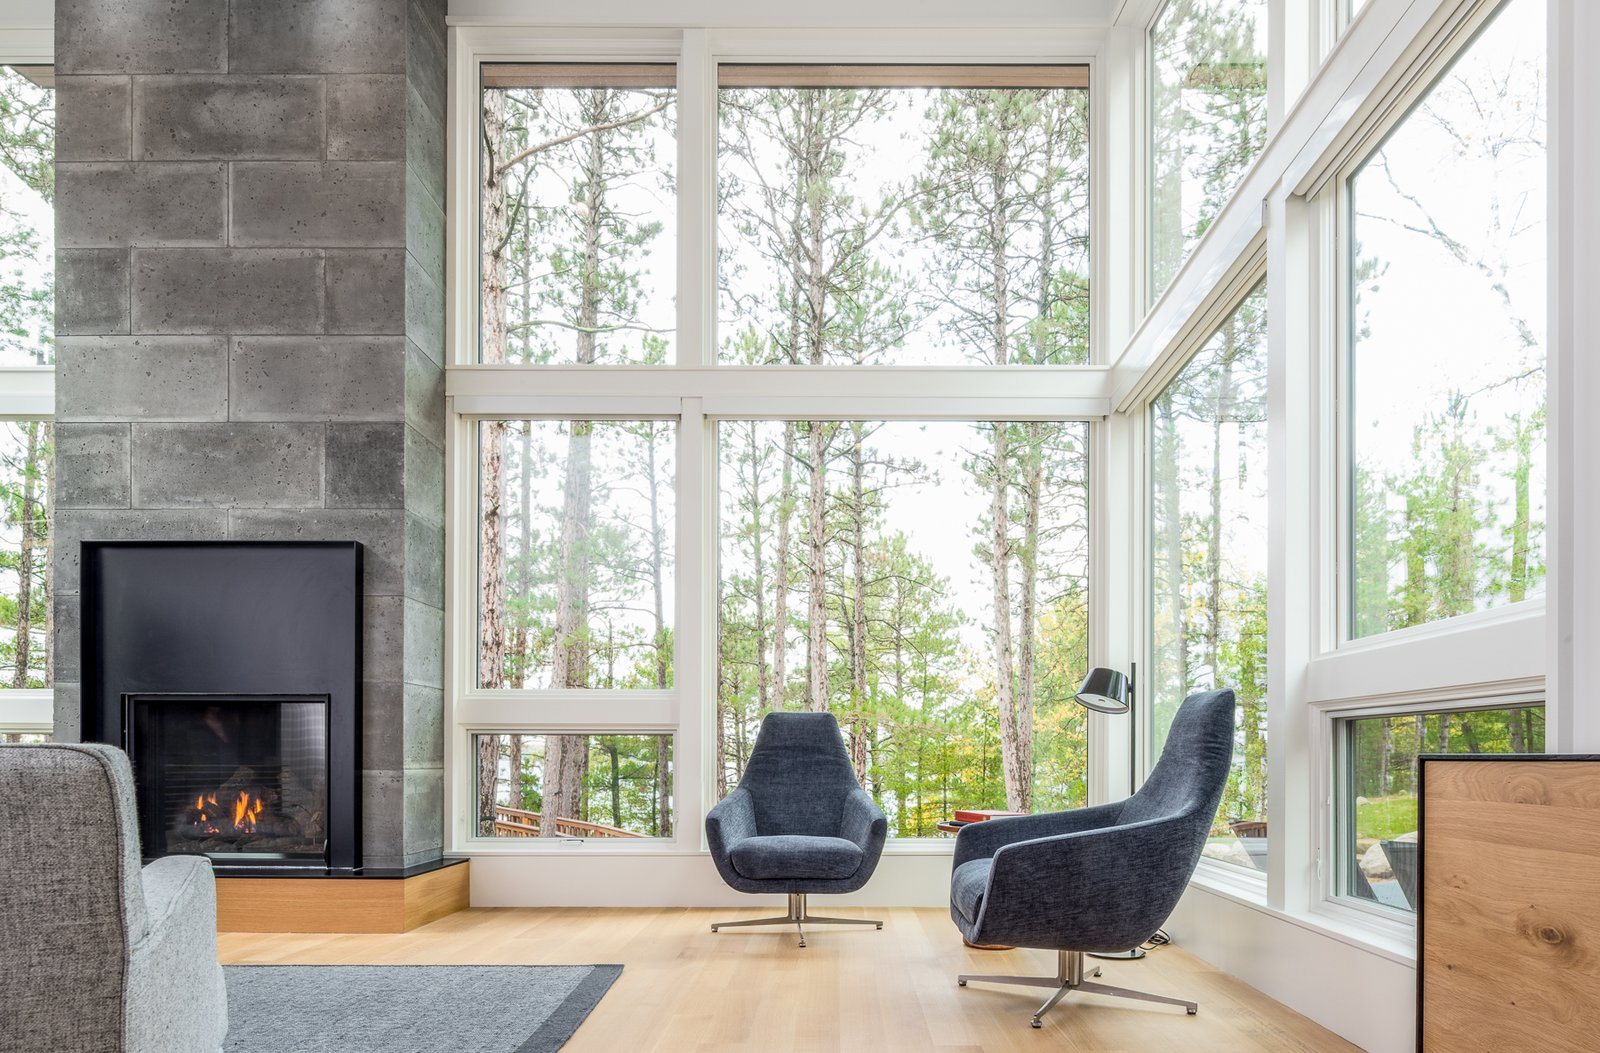 Living Room, Sofa, Chair, Ceiling Lighting, Floor Lighting, Light Hardwood Floor, Standard Layout Fireplace, and Gas Burning Fireplace  Northern Lake Home by Strand Design